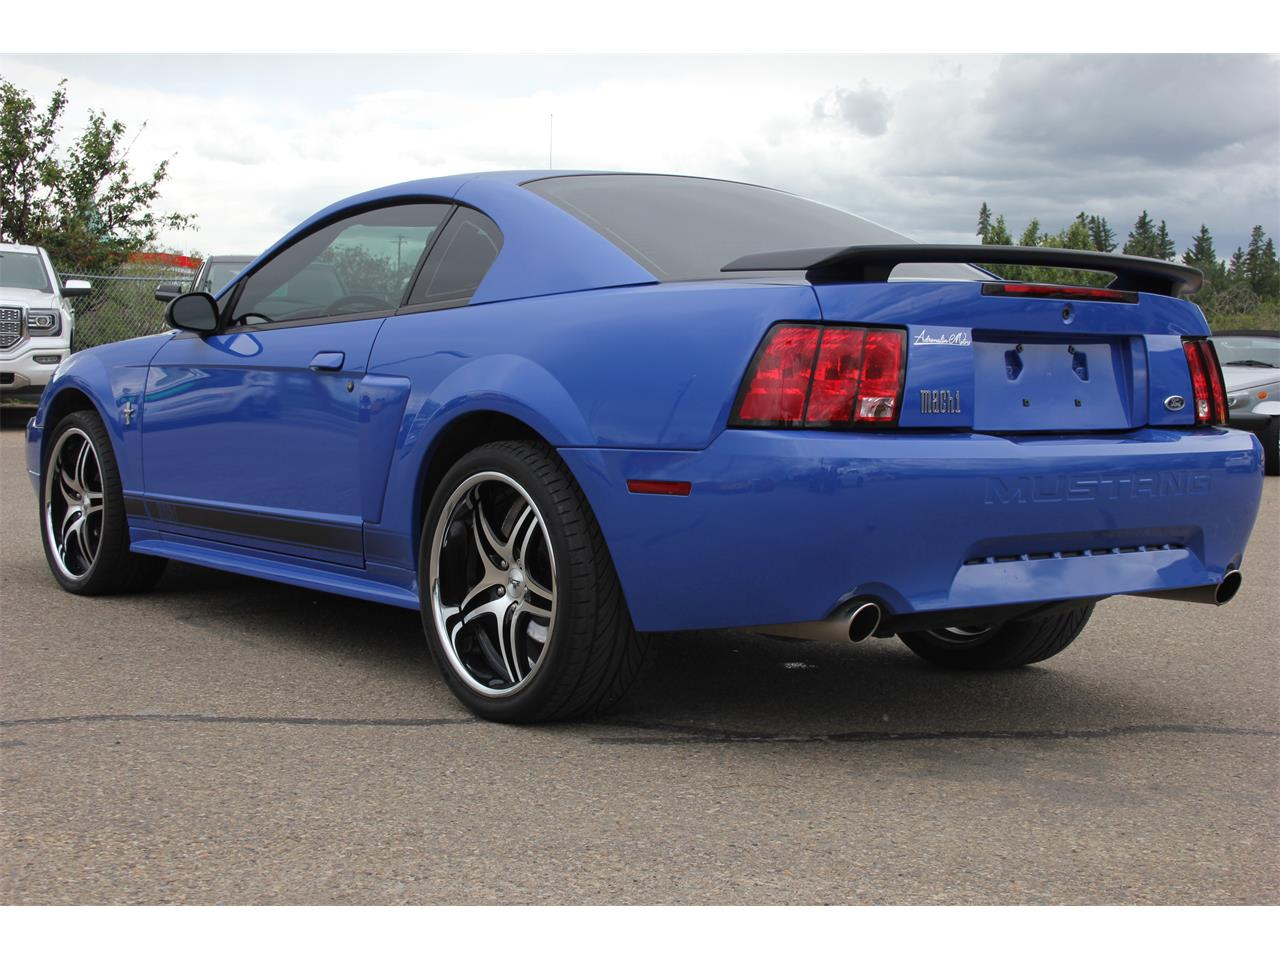 Large Picture of '03 Ford Mustang Mach 1 located in Sylvan Lake Alberta - $19,900.00 - LAXP